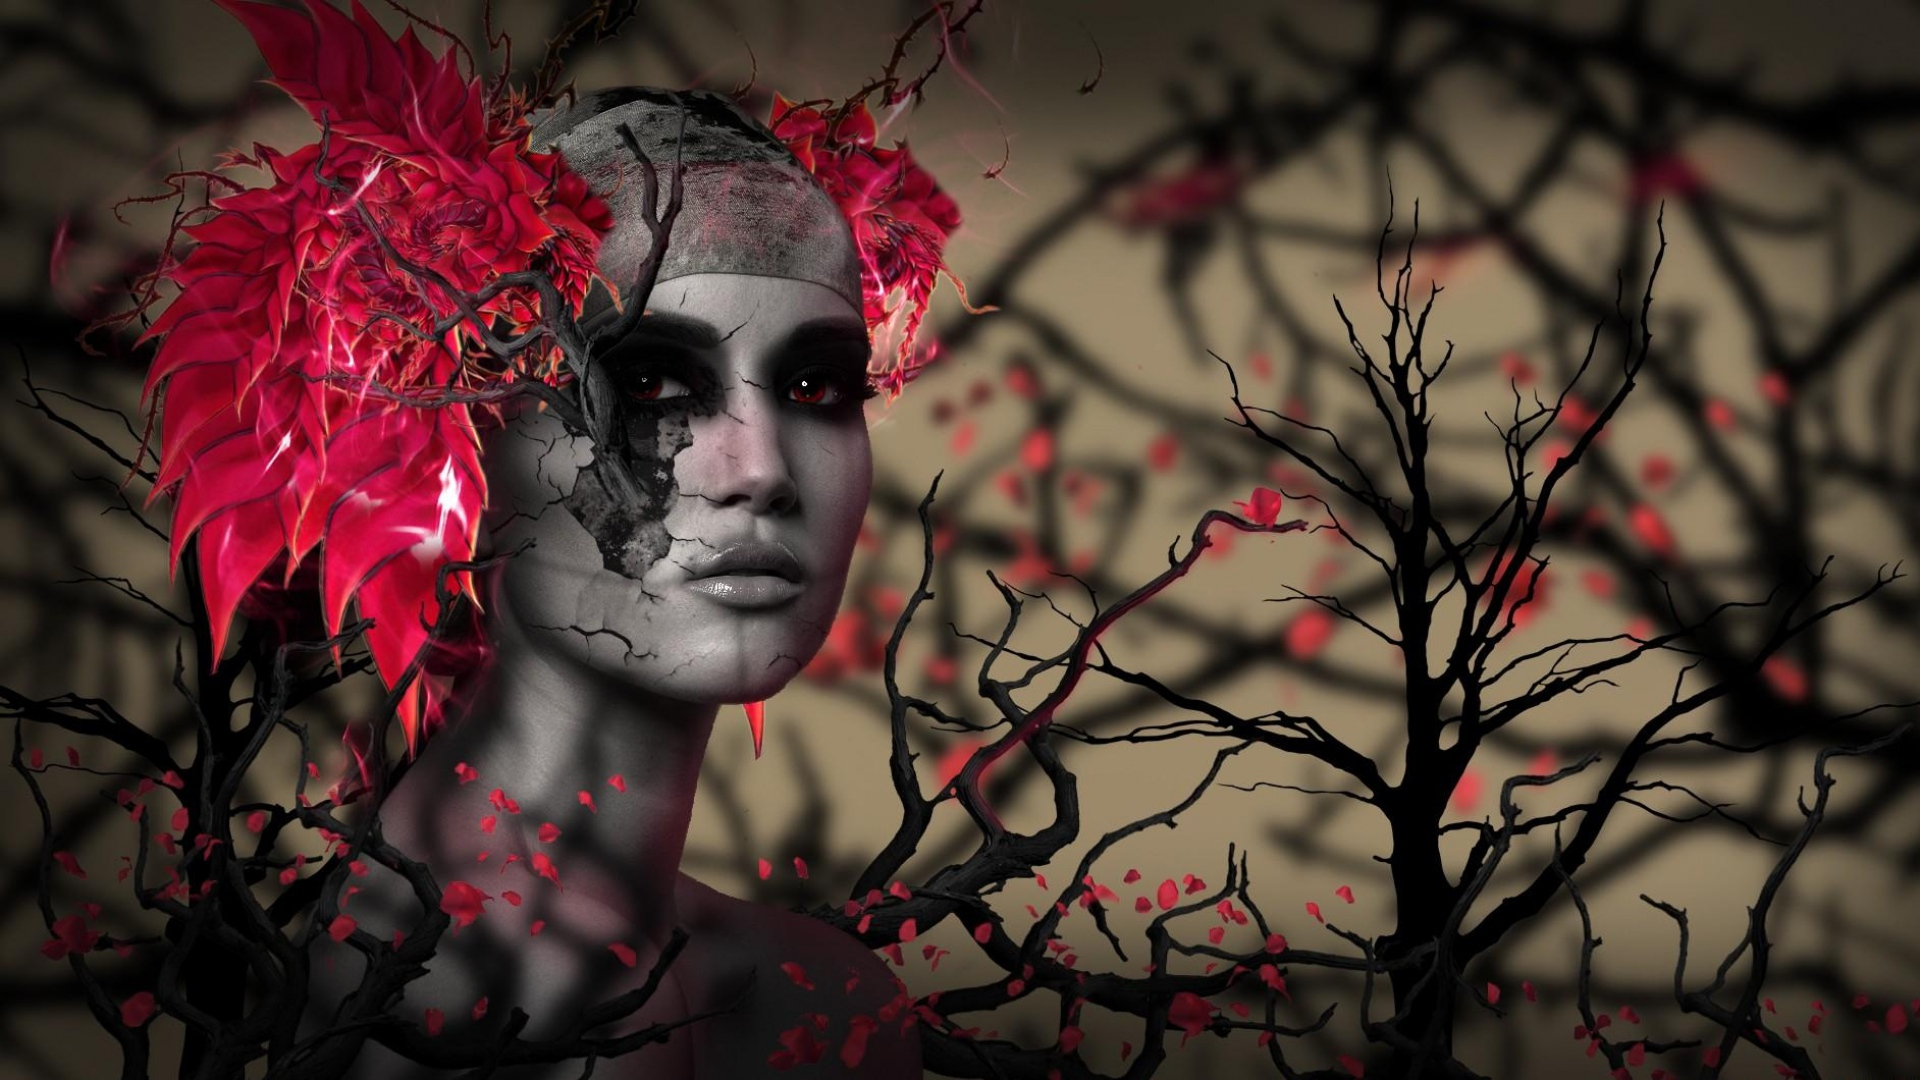 girl-trees-branches-flowers-1920x1080